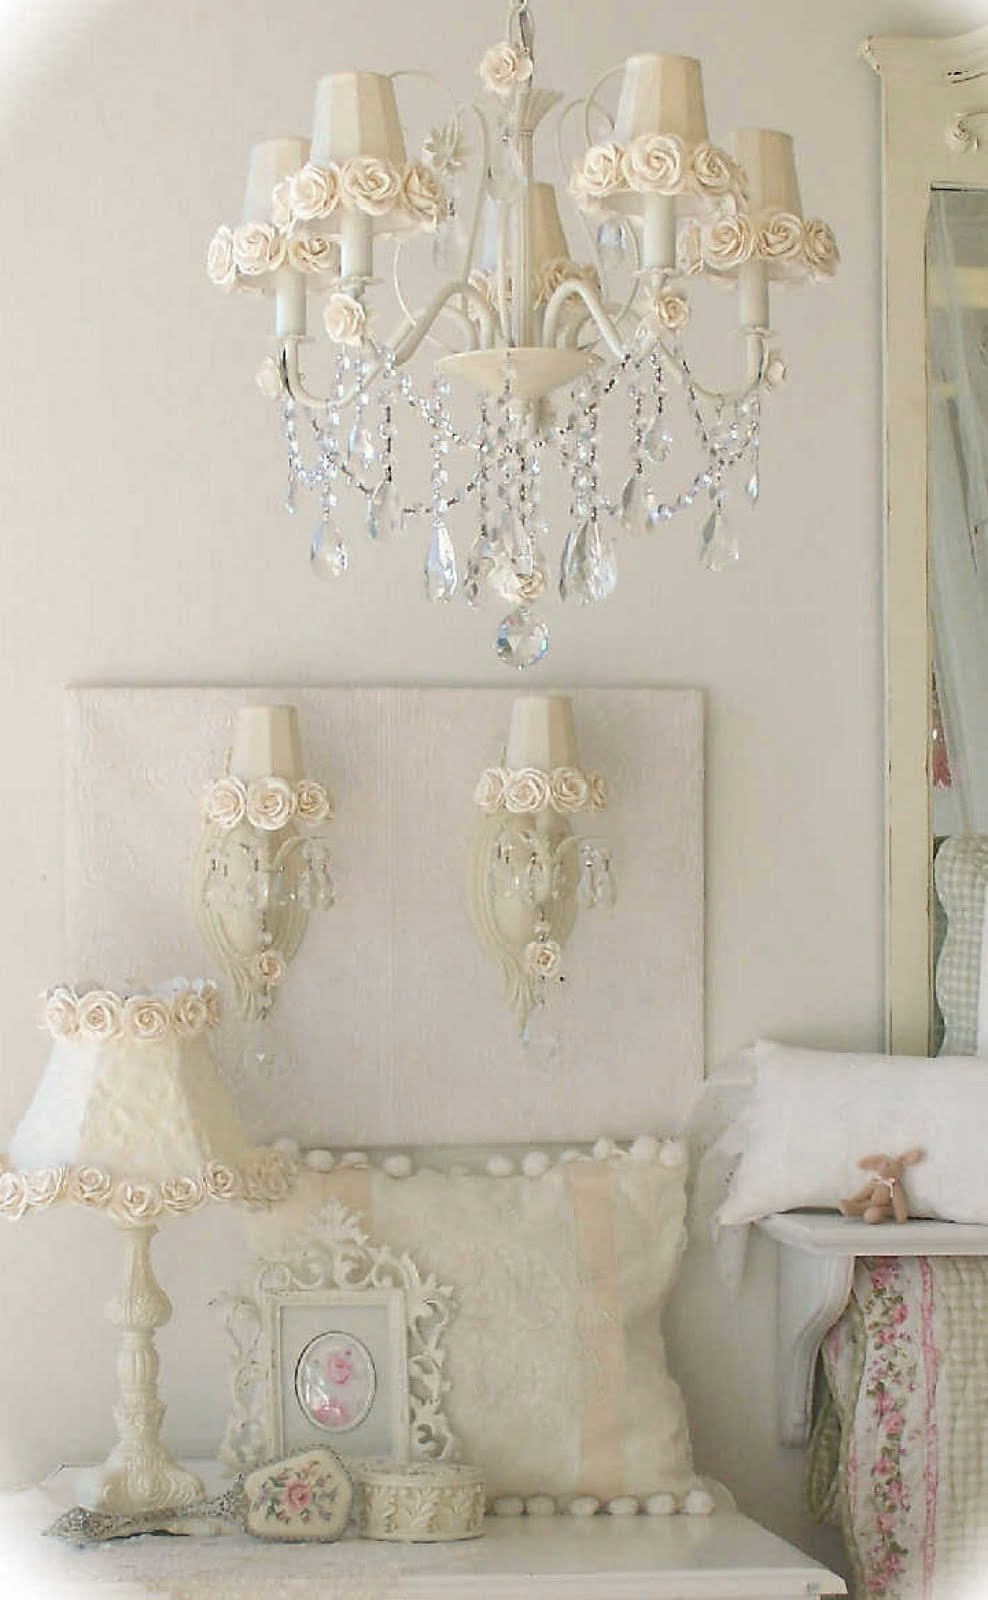 Lavender Fields A Lifestyle Store New Shabby Romantic Chandeliers